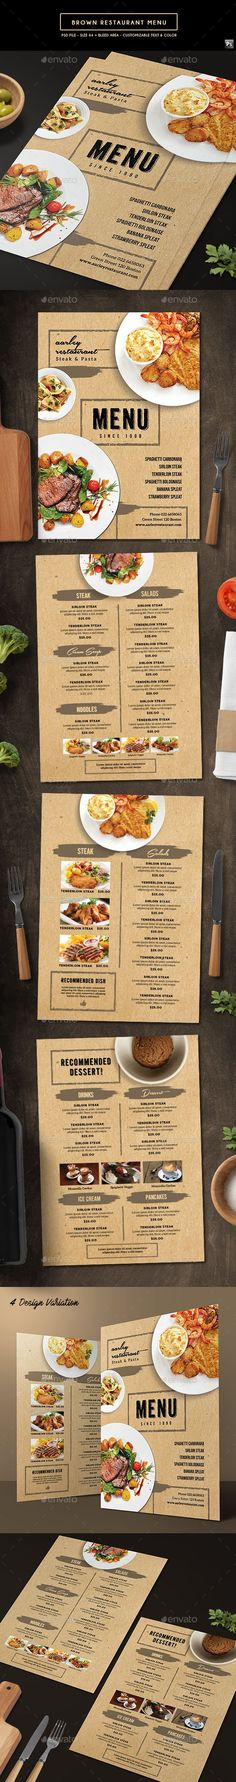 Brown Restaurant Menu Template PSD